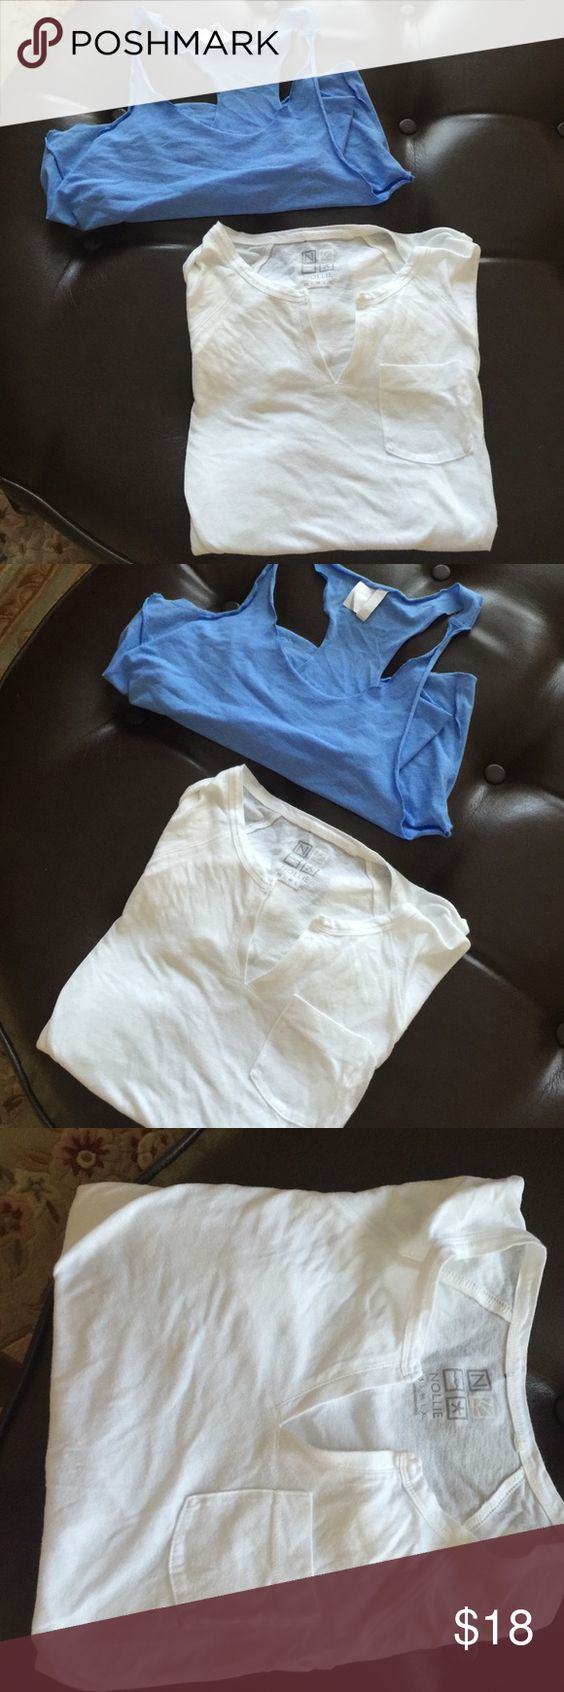 Bundle: White Pacsun Pocket Tee & H&M Muscle Tee Bundle: White Pacsun Pocket Tee & H&M Muscle Tee. Bundle Bundle Bundle ☺️ Both have never been worn, no rips tears or holes. Pacsun and H&M brands . The original price of the Pacsun Tee was 25 and 10 for the Muscle tee so all together the total would be $35 PacSun Tops Tees - Short Sleeve